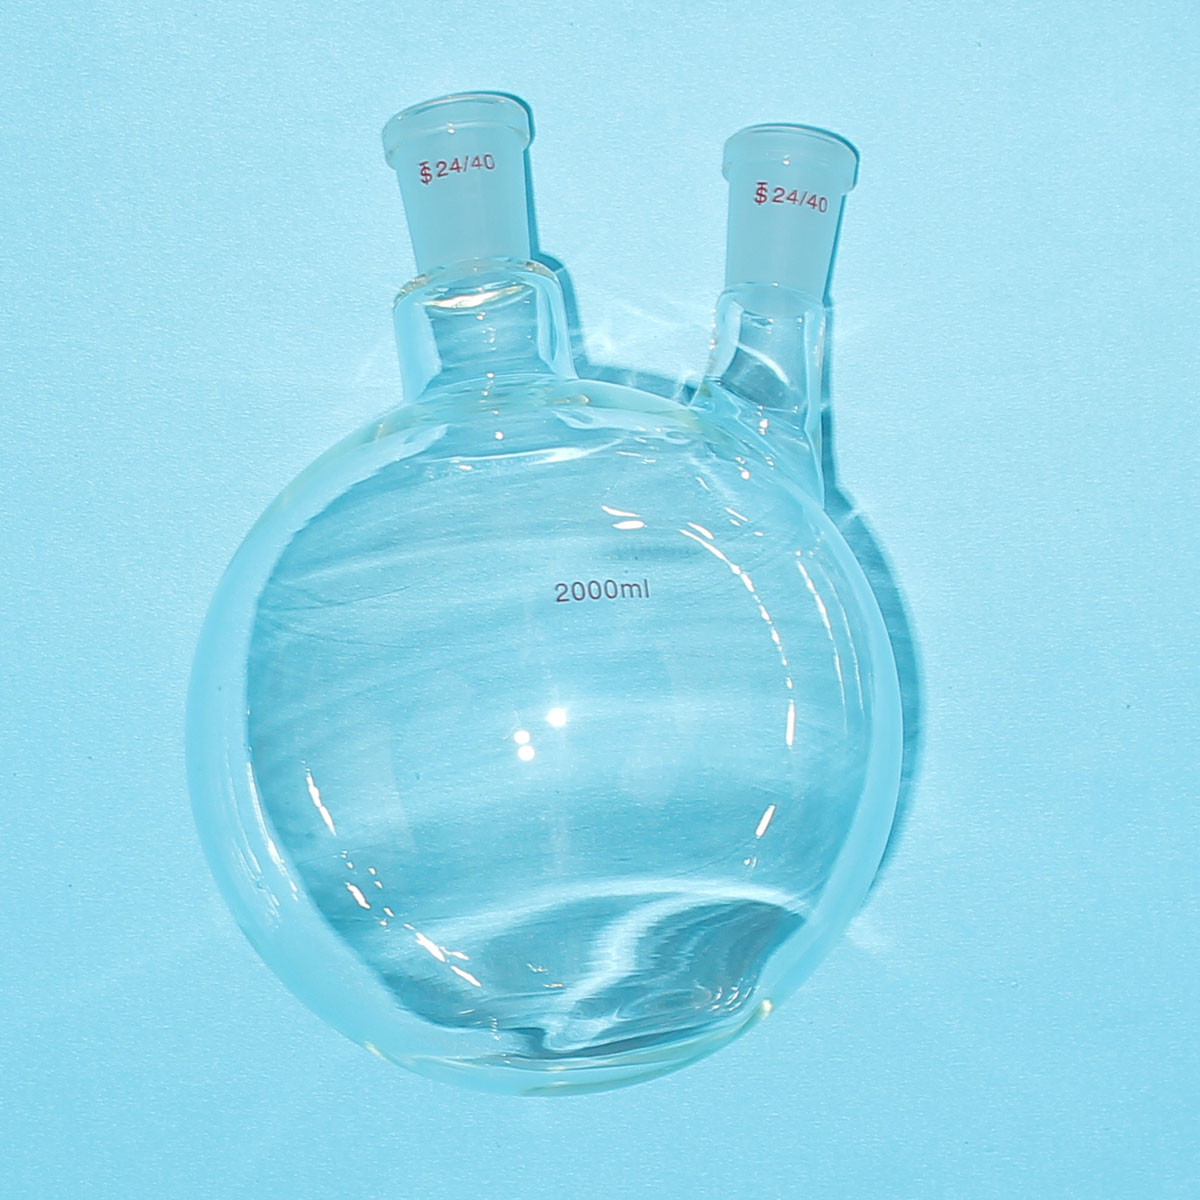 2000ML 2 Neck 24 40 Round Bottom Glass Flask Two Necks Chemistry Boiling Bottle Lab Supplies ISO Standard Glass Flask 1pc lot 50 60 125 250 500 1000 2000ml quartz glass distillation flask with round bottom for kinds of lab experiments